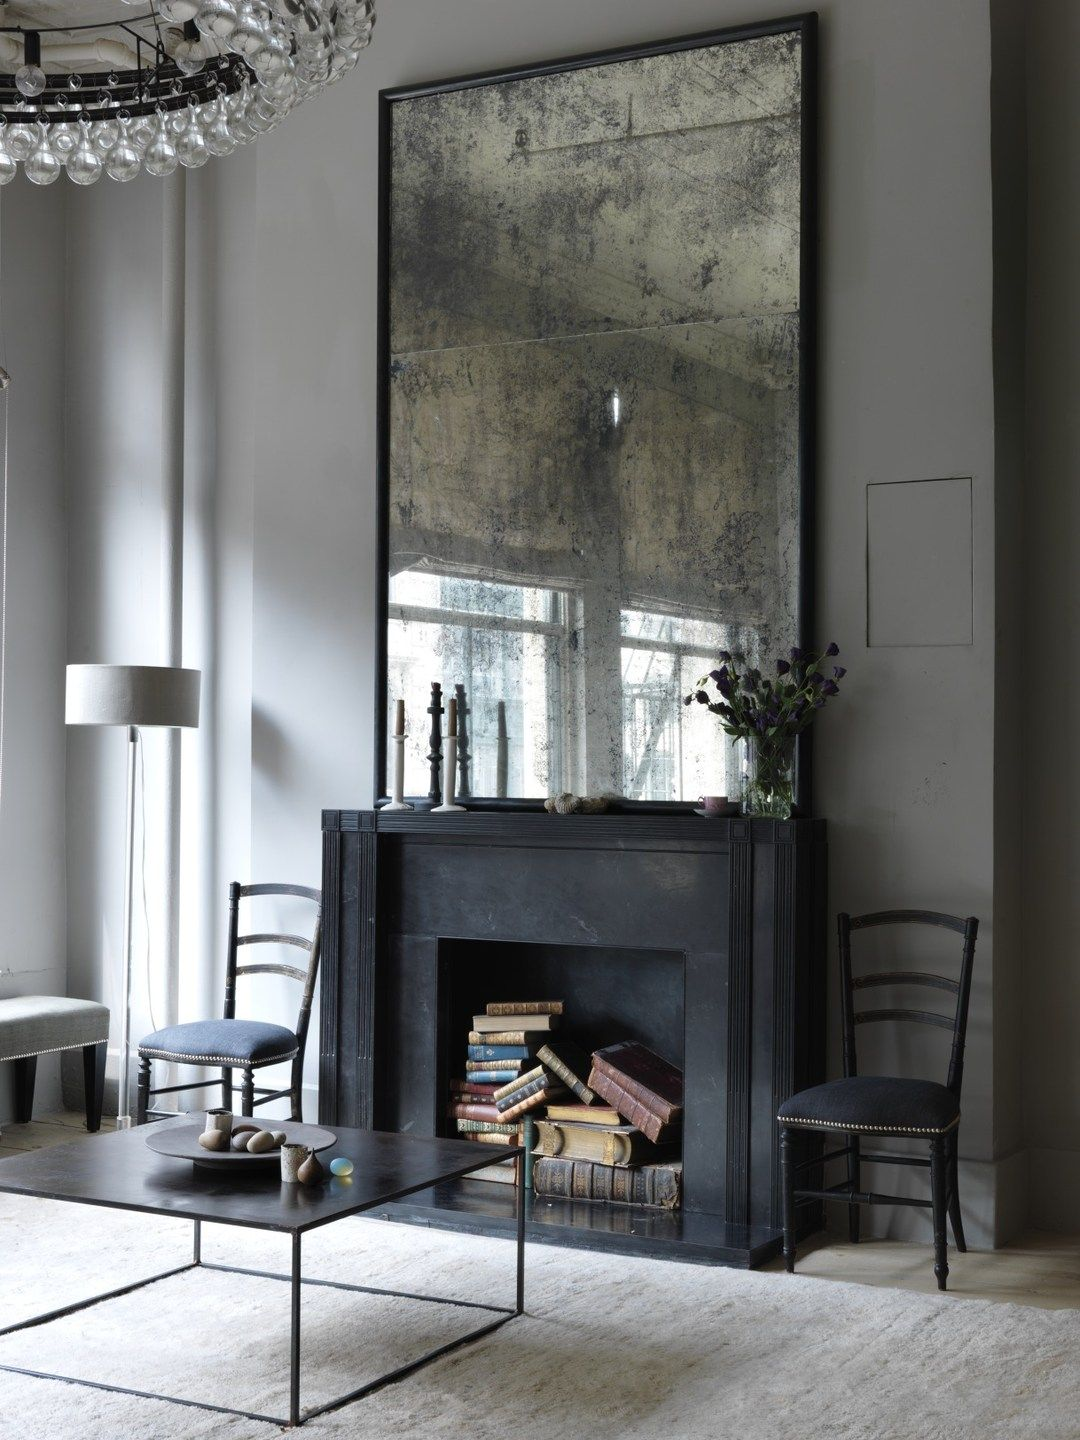 Summer Style Modern And Contemporary Black Fireplace With Worn